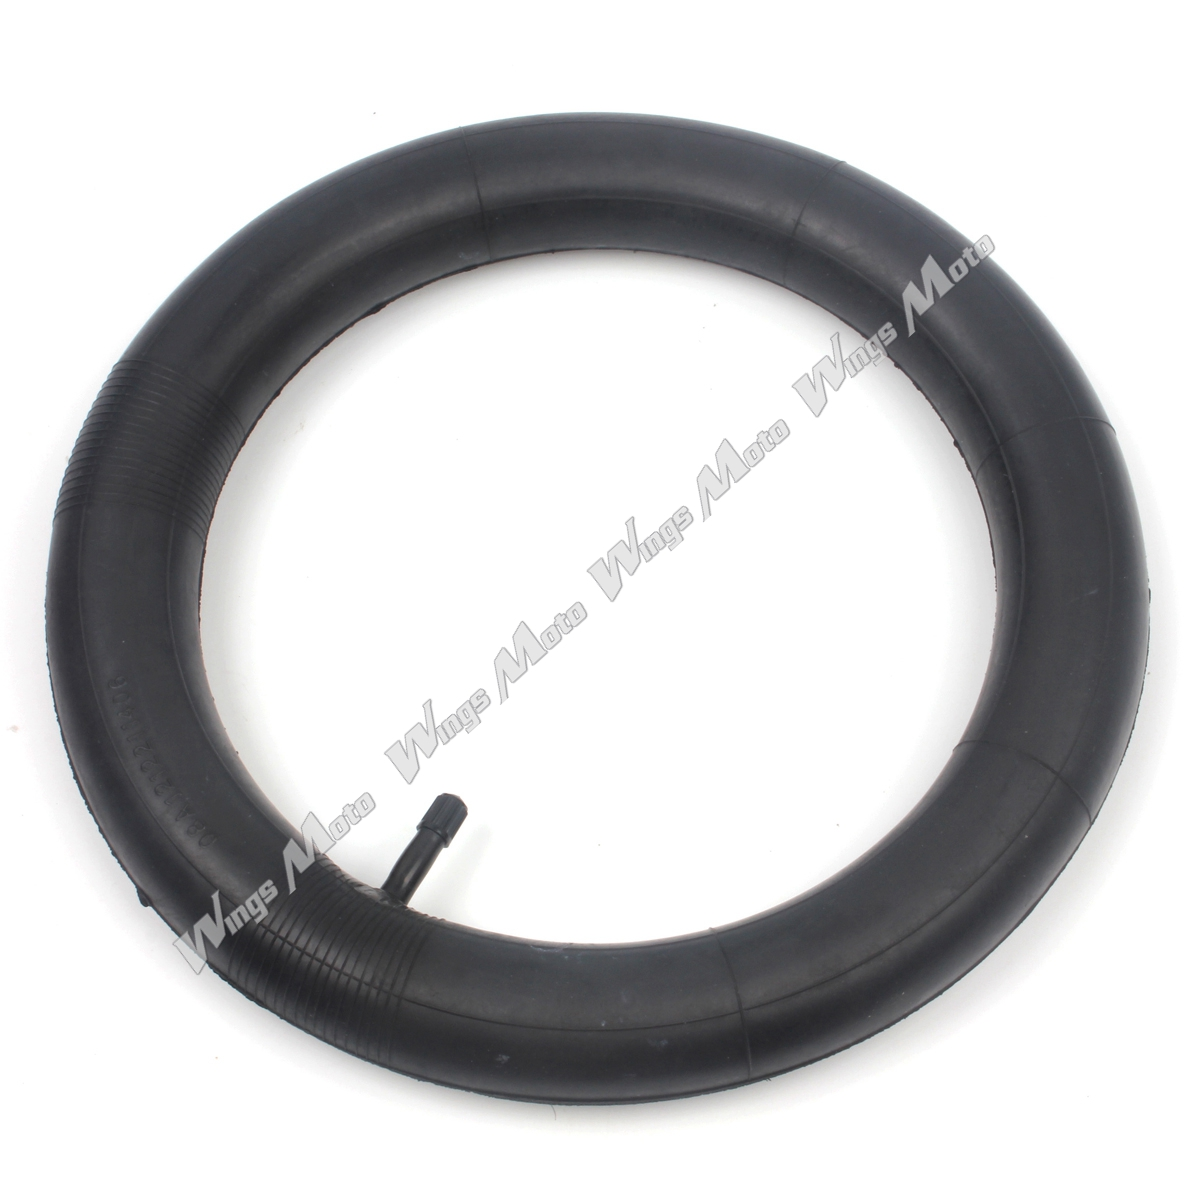 12 1/2 x 2 1/4 Inner Tube w/ TR13 Straight Stem for Razor Pocket Mod Isobutylene Isoprene Rubber